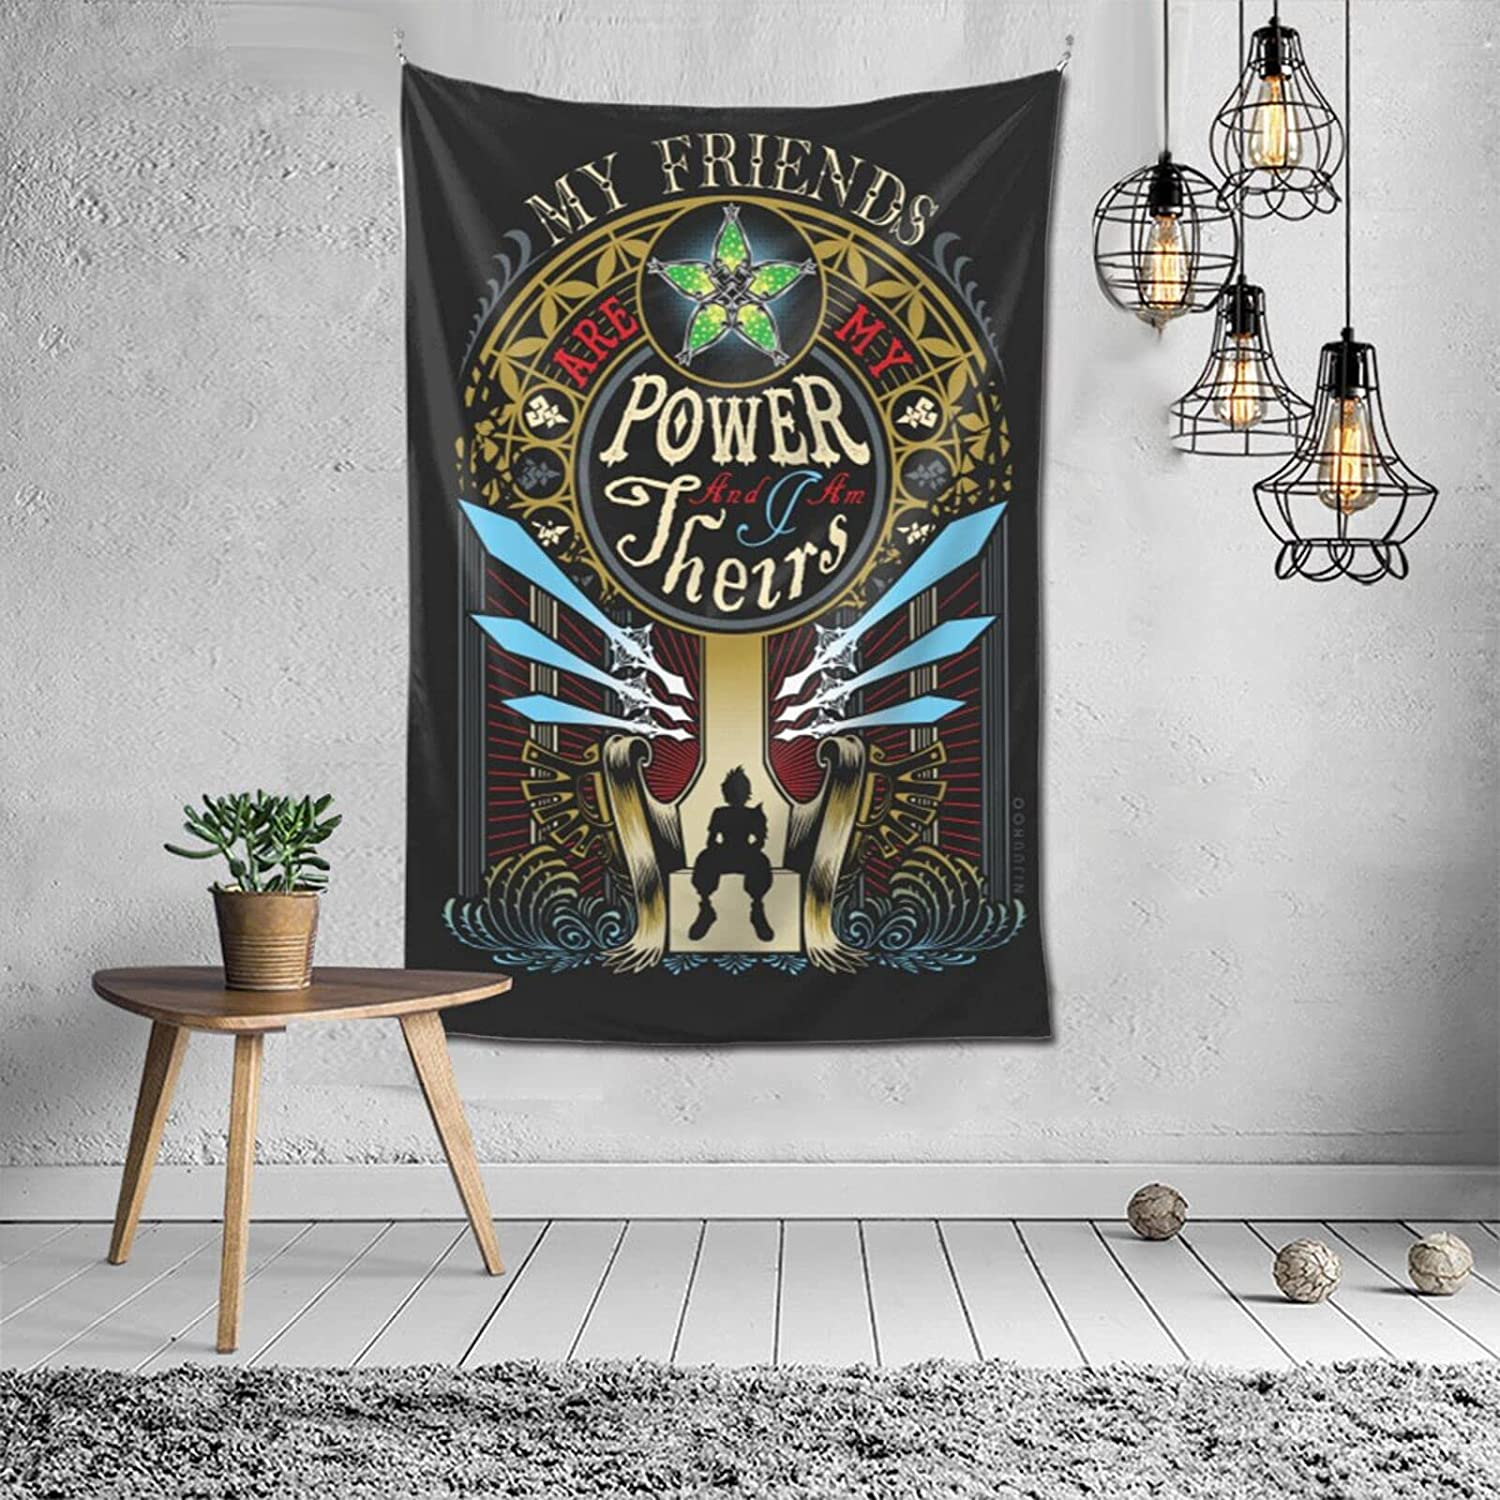 Vertical Tapestry Ven S Valor Ventus Kh Kingdom Hearts Wall Tapestry Anime Fans Home Dorm Wall Decor 60x40 Inch